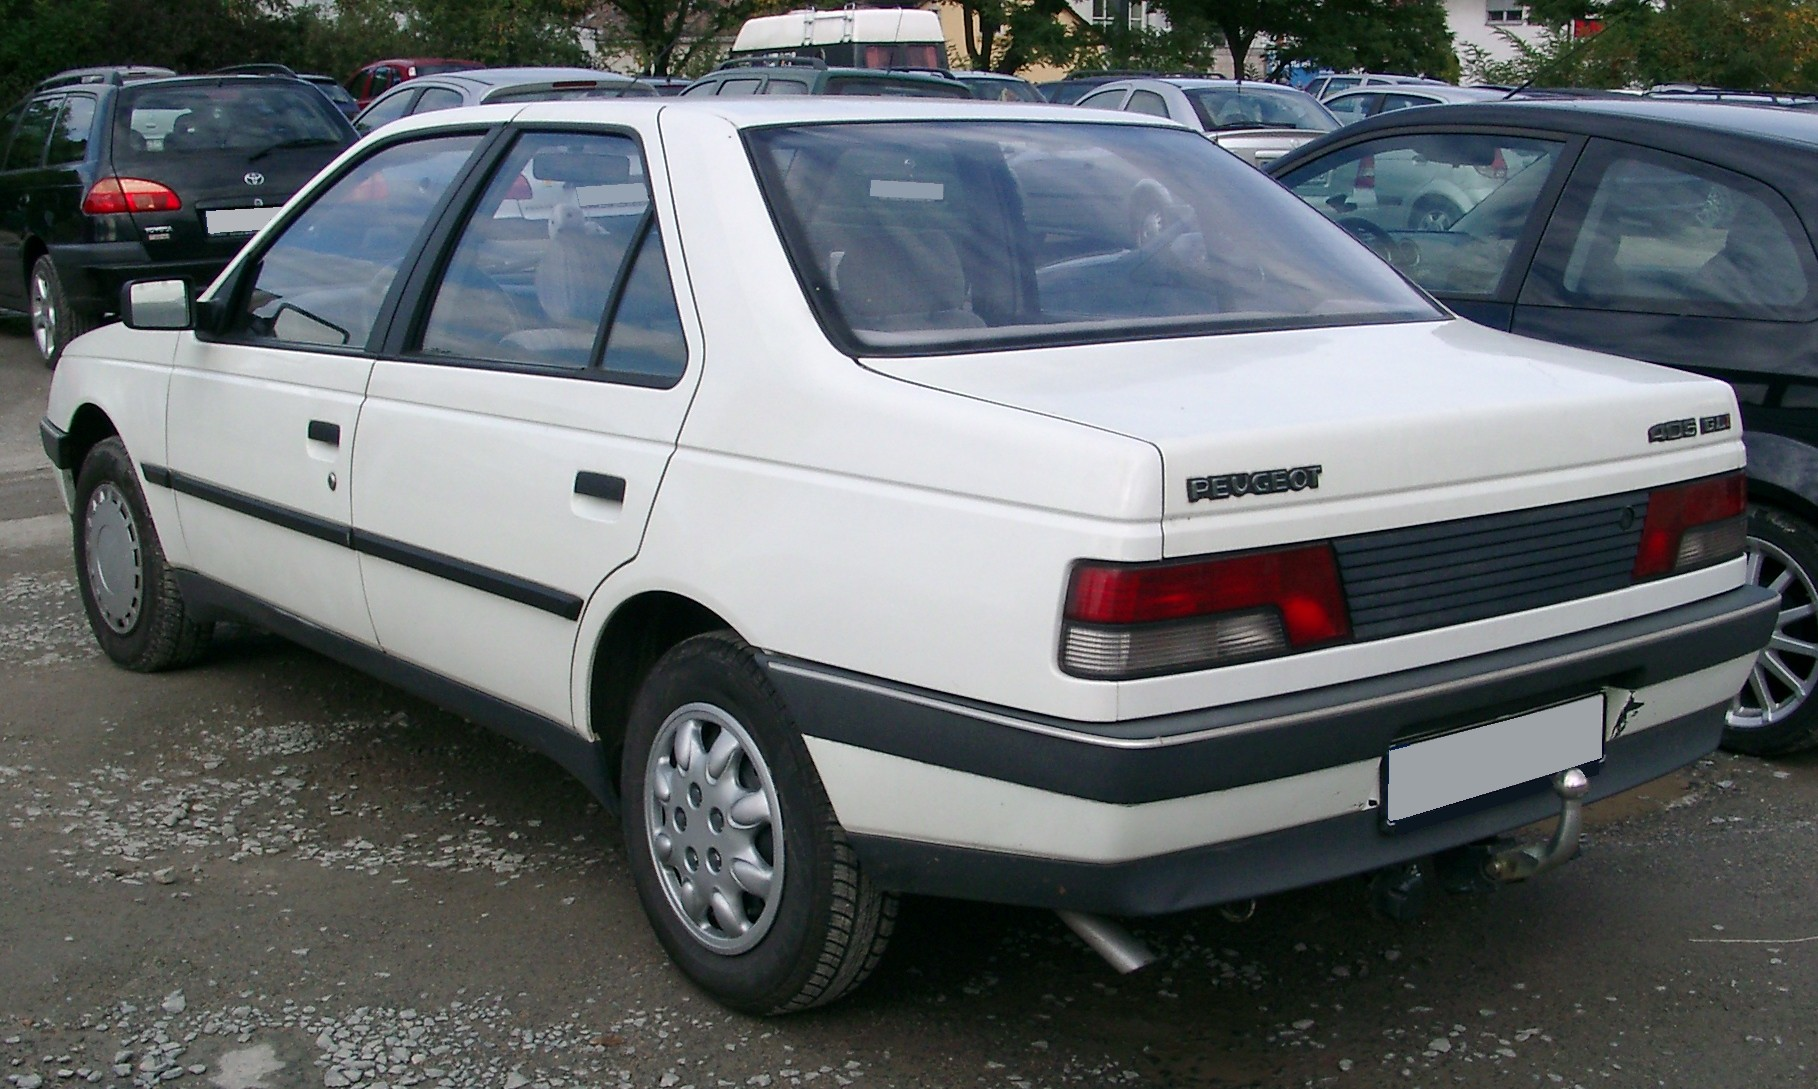 Peugeot 405 rear Show Wallpapers Download